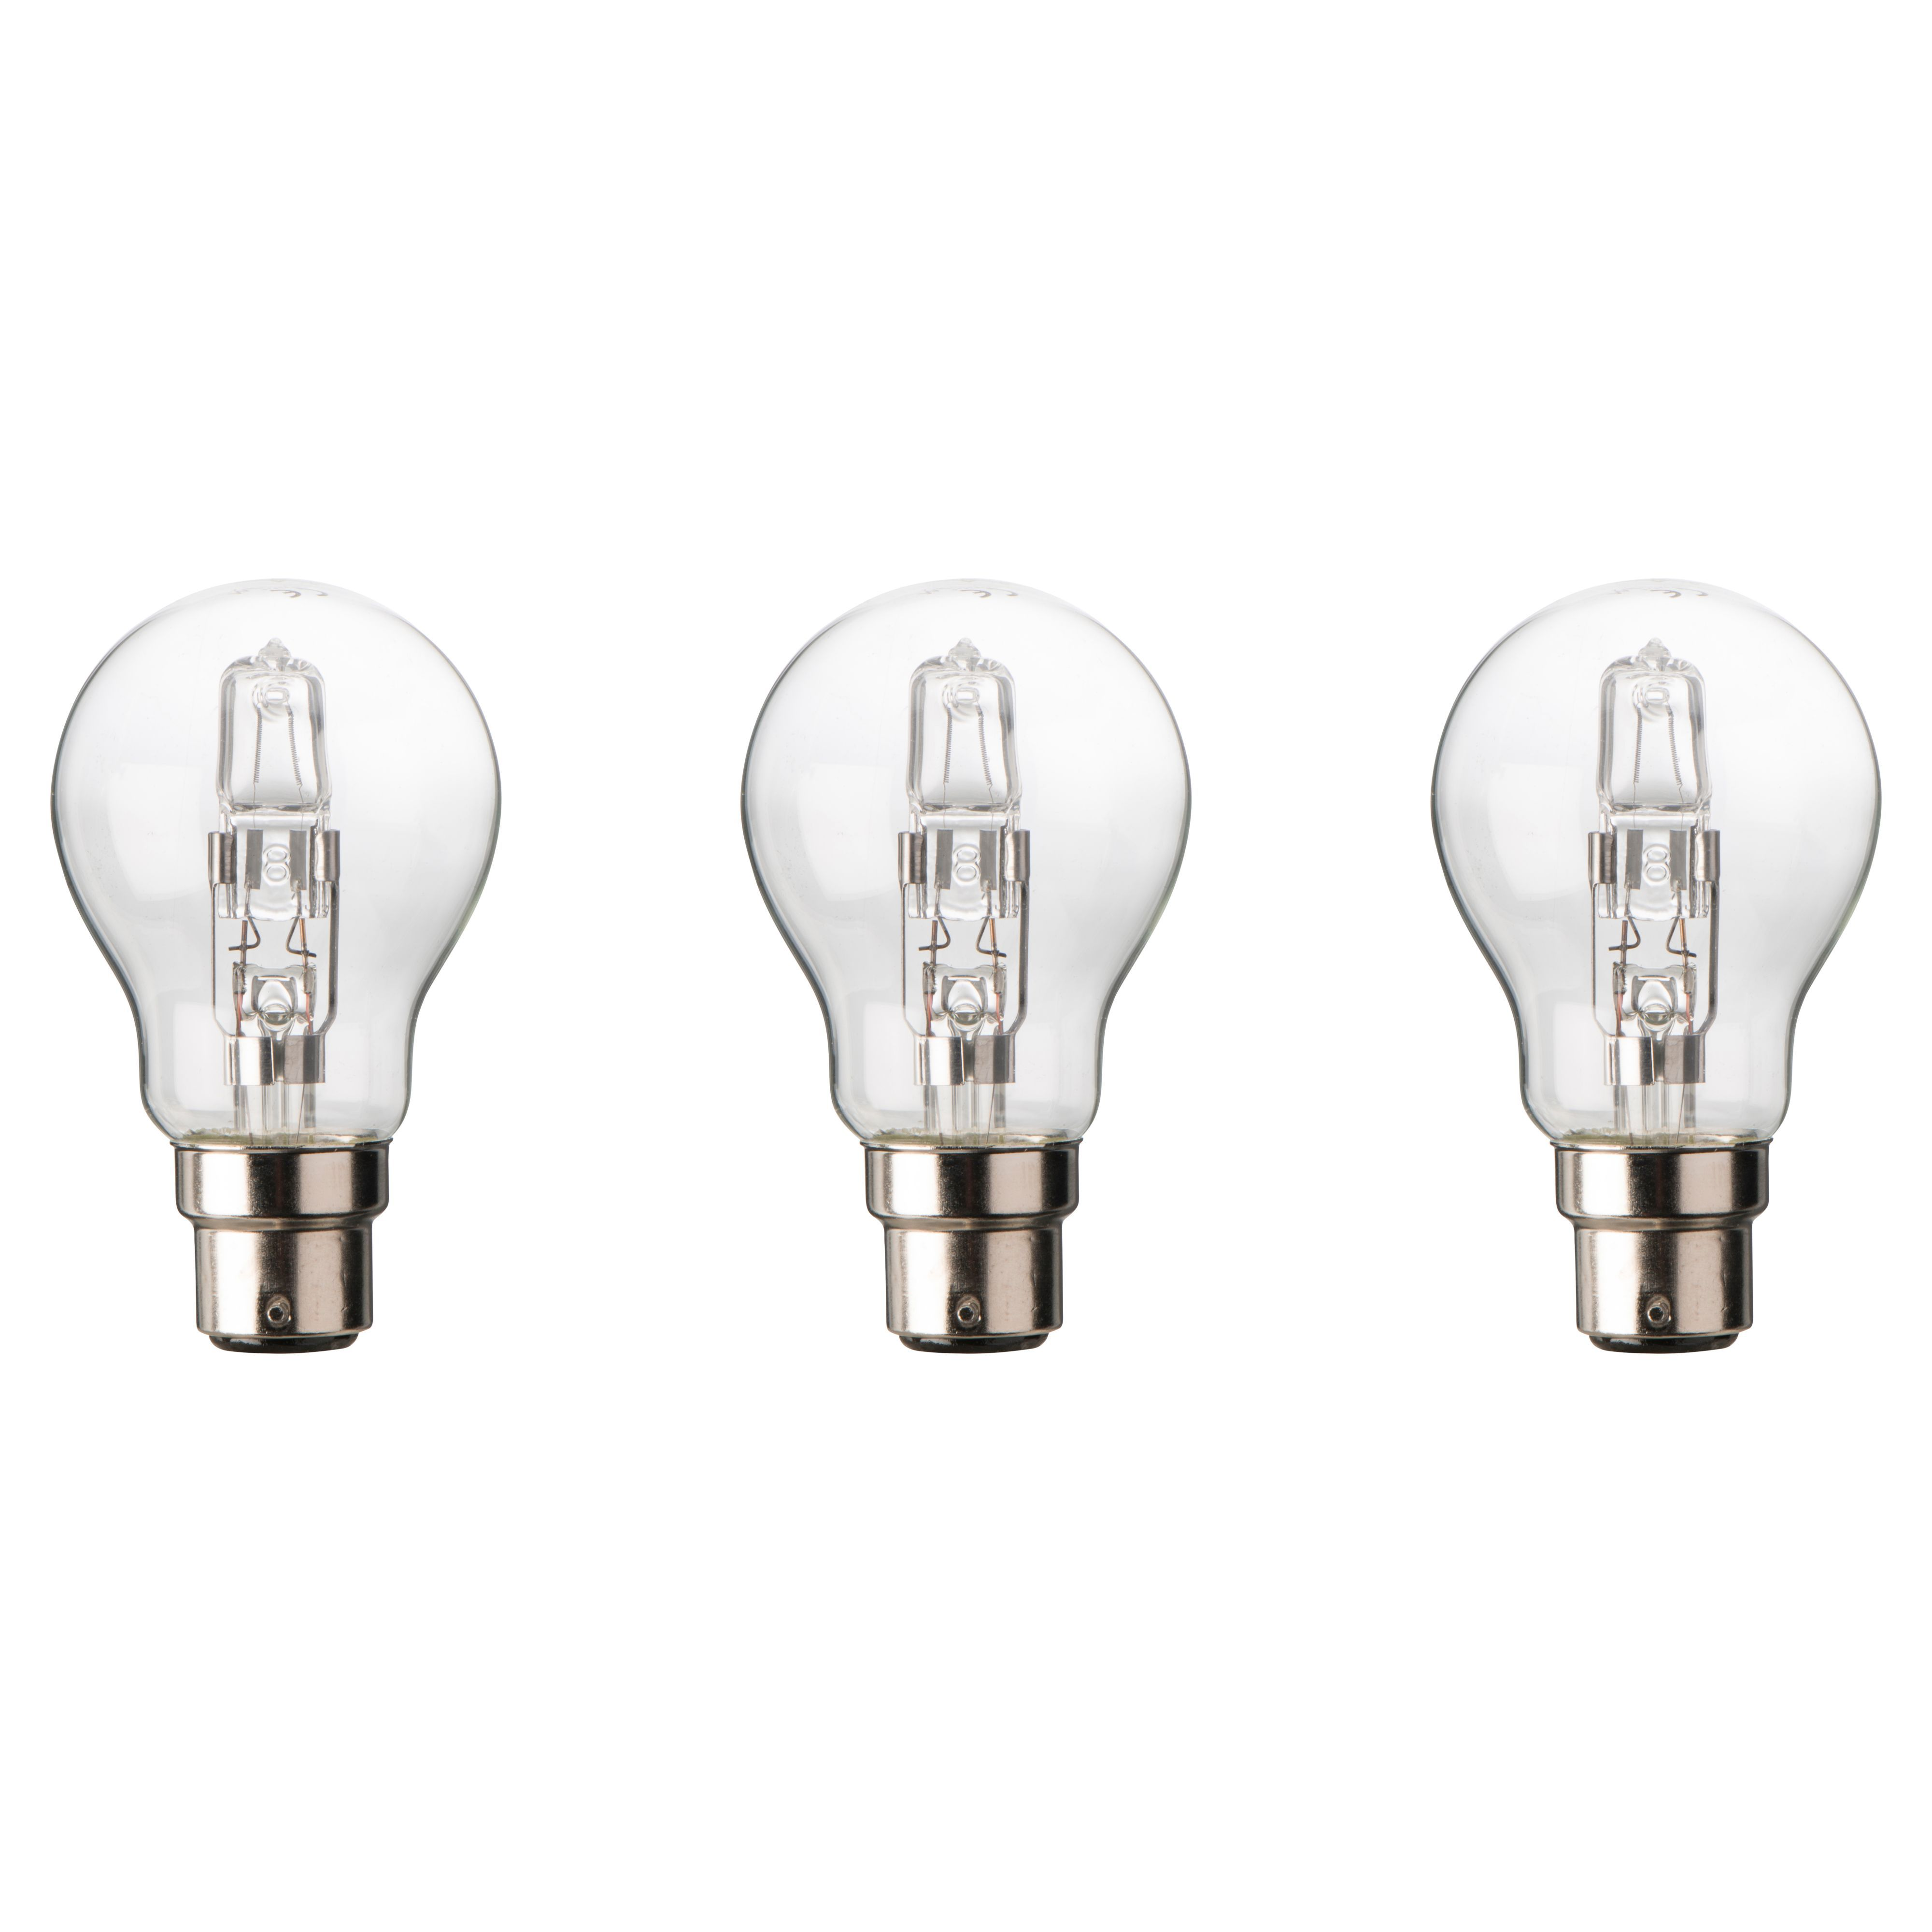 Diall R7S W Halogen Dimmable Linear Light Bulb Pack of 1